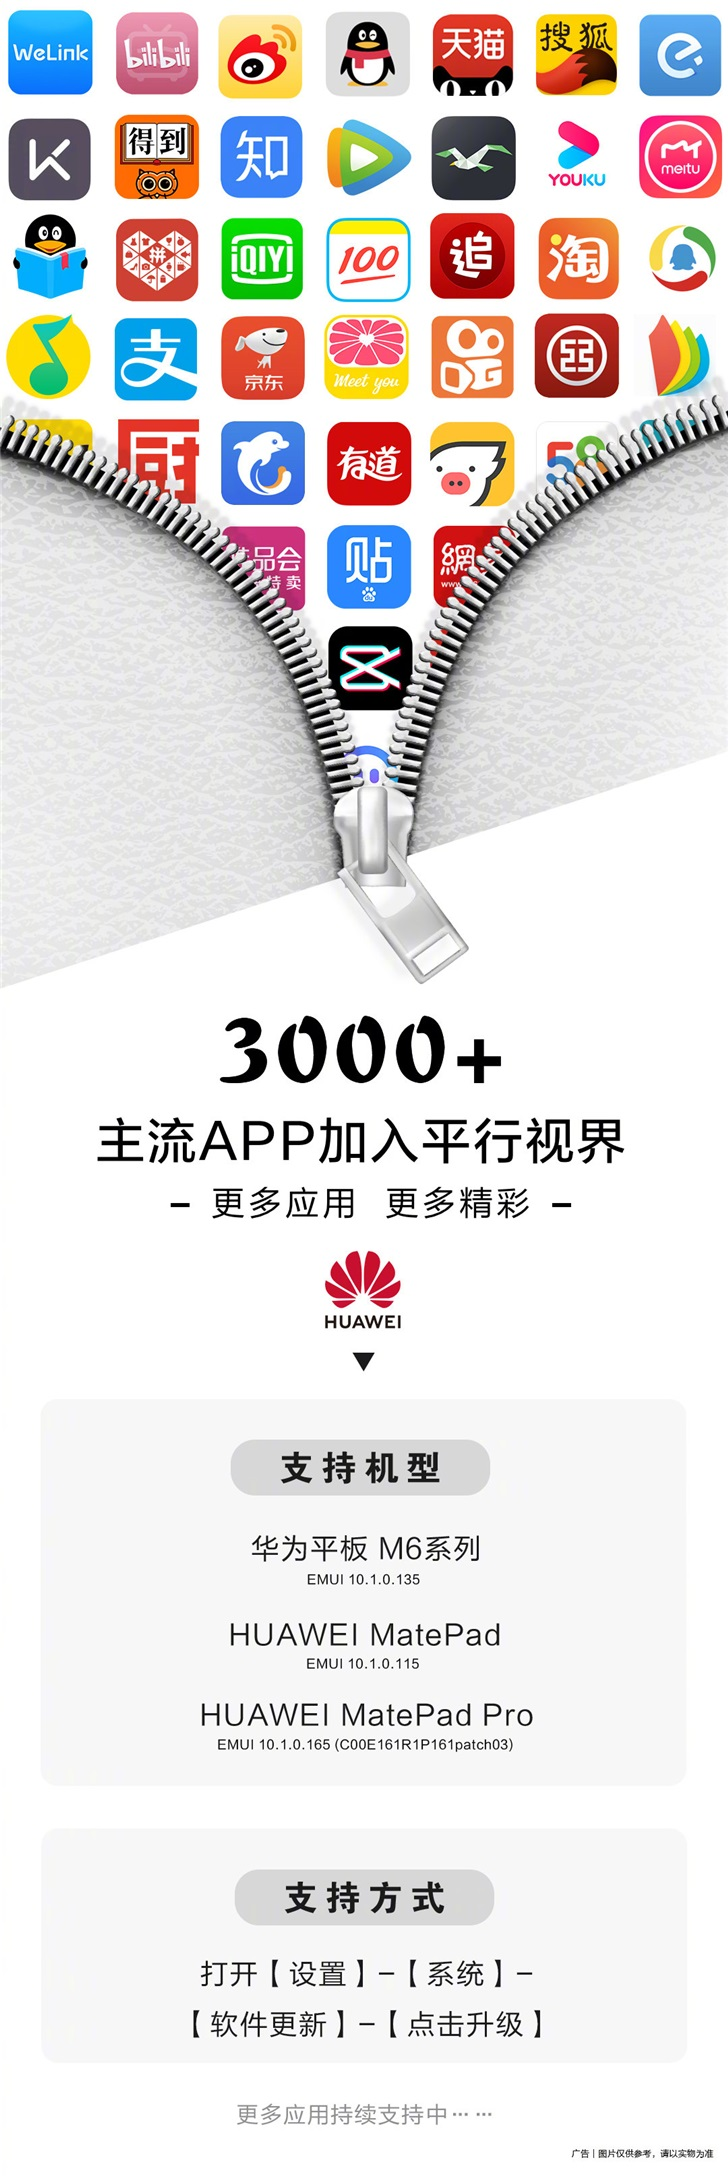 Huawei says over 3,000 apps support MatePad parallel horizon function-cnTechPost